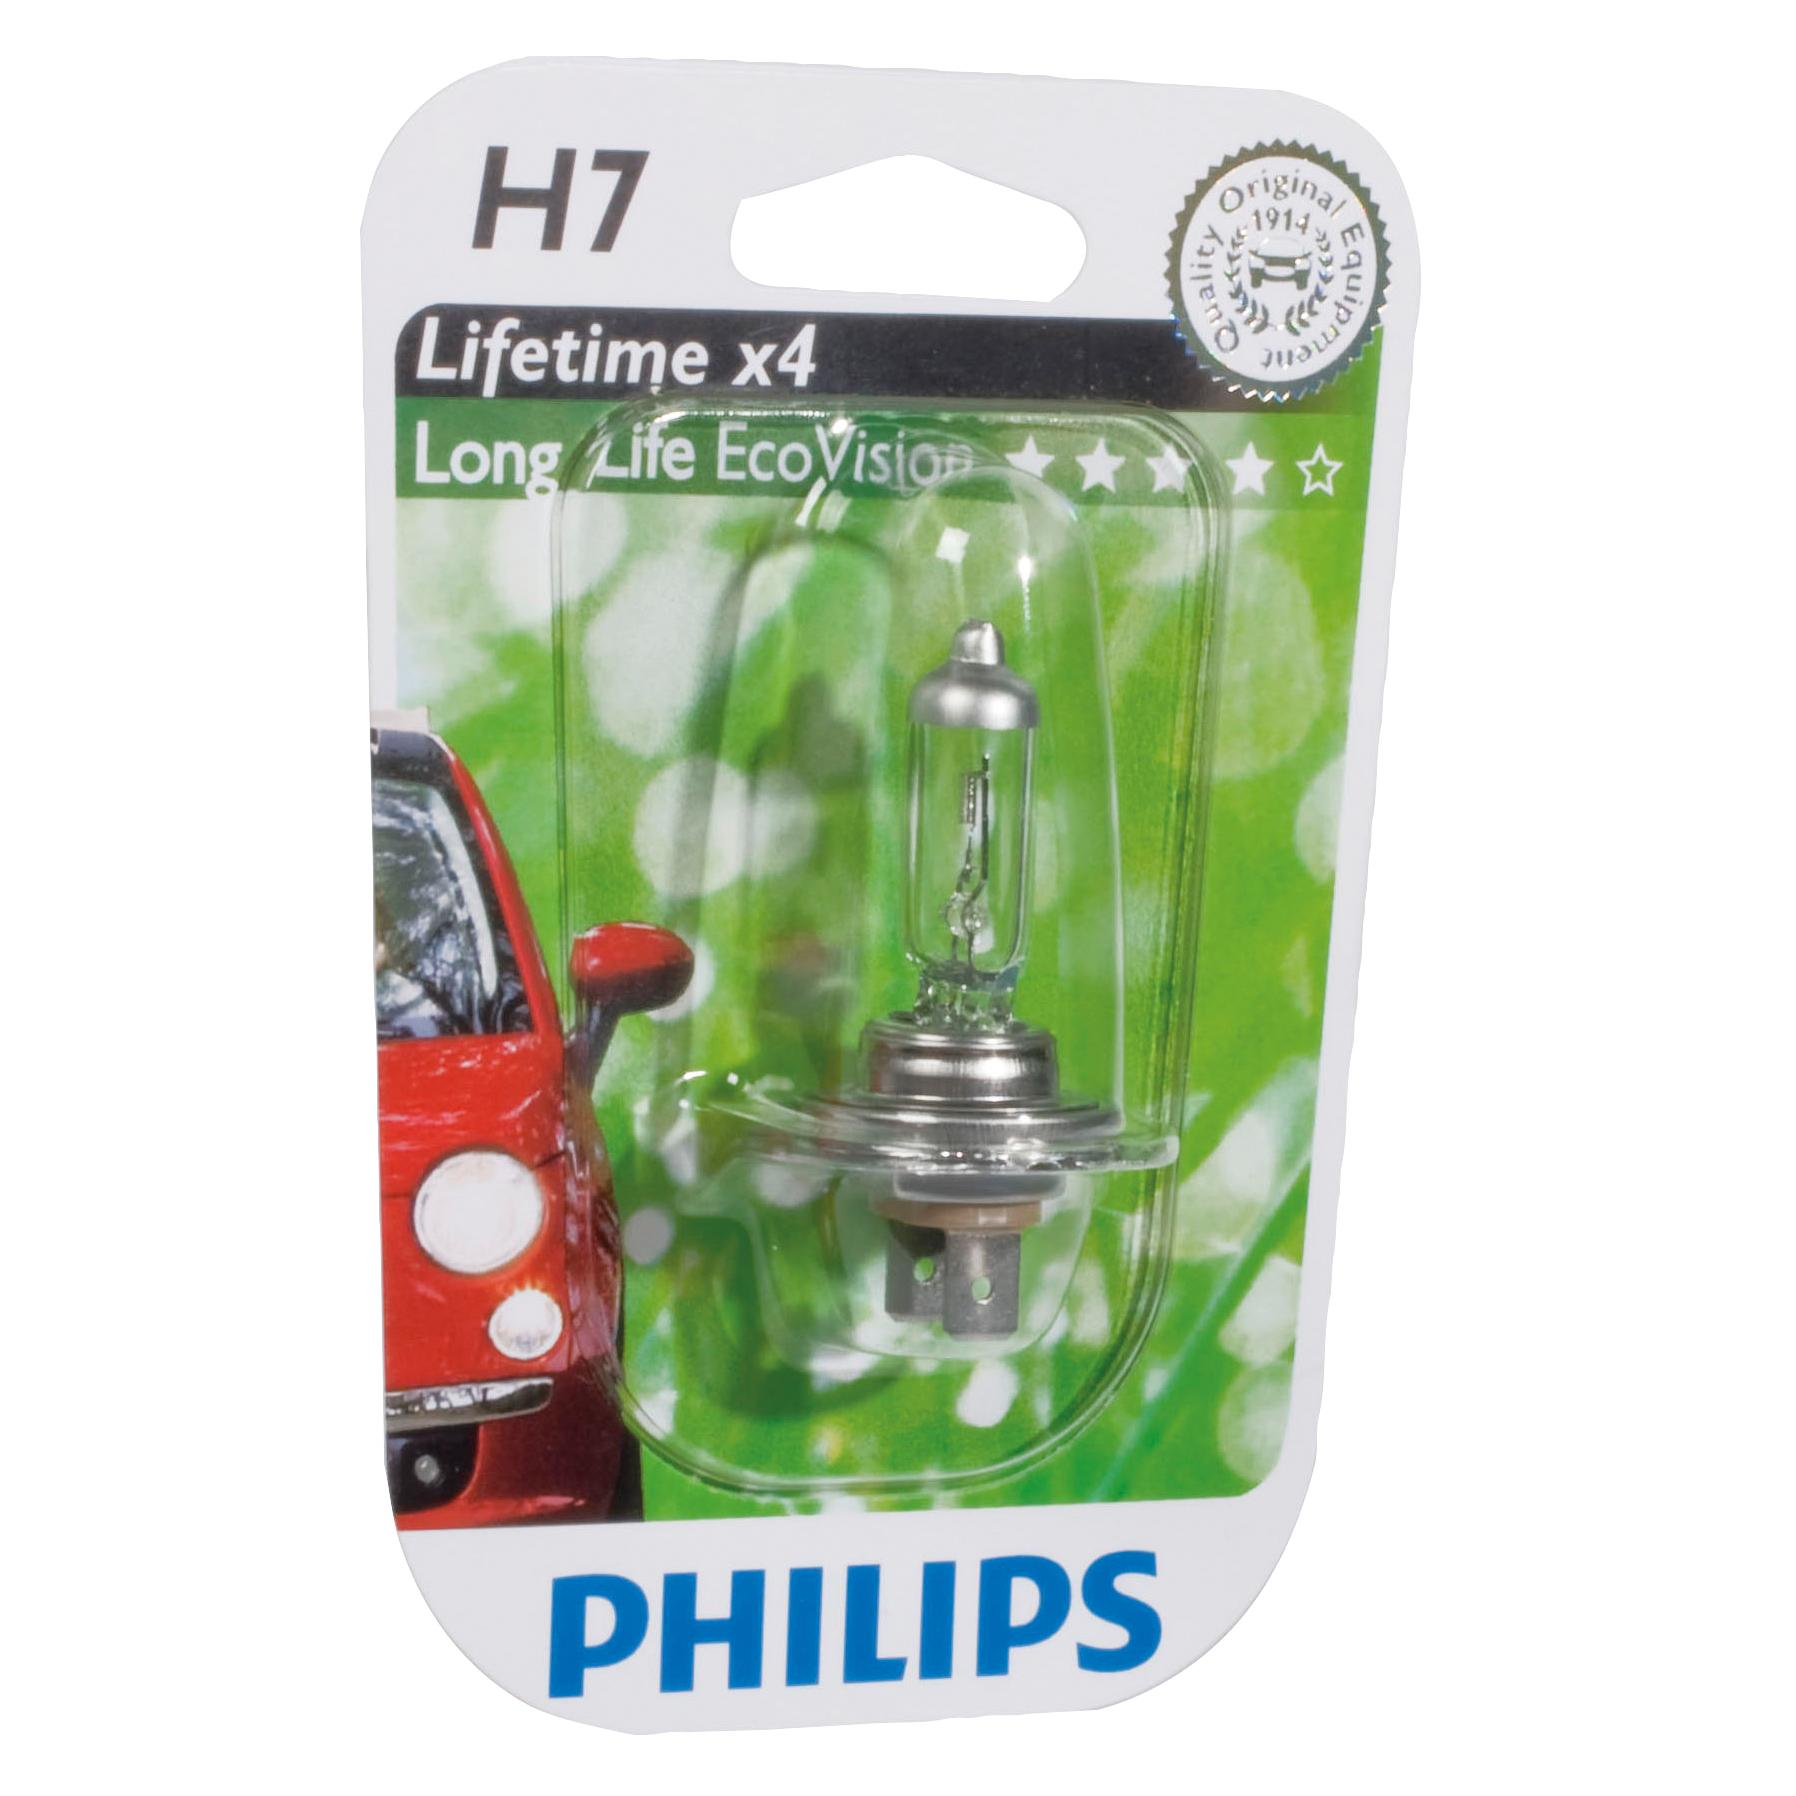 ampoule voiture h7 12v philips 1 ampoule h7 longerl. Black Bedroom Furniture Sets. Home Design Ideas